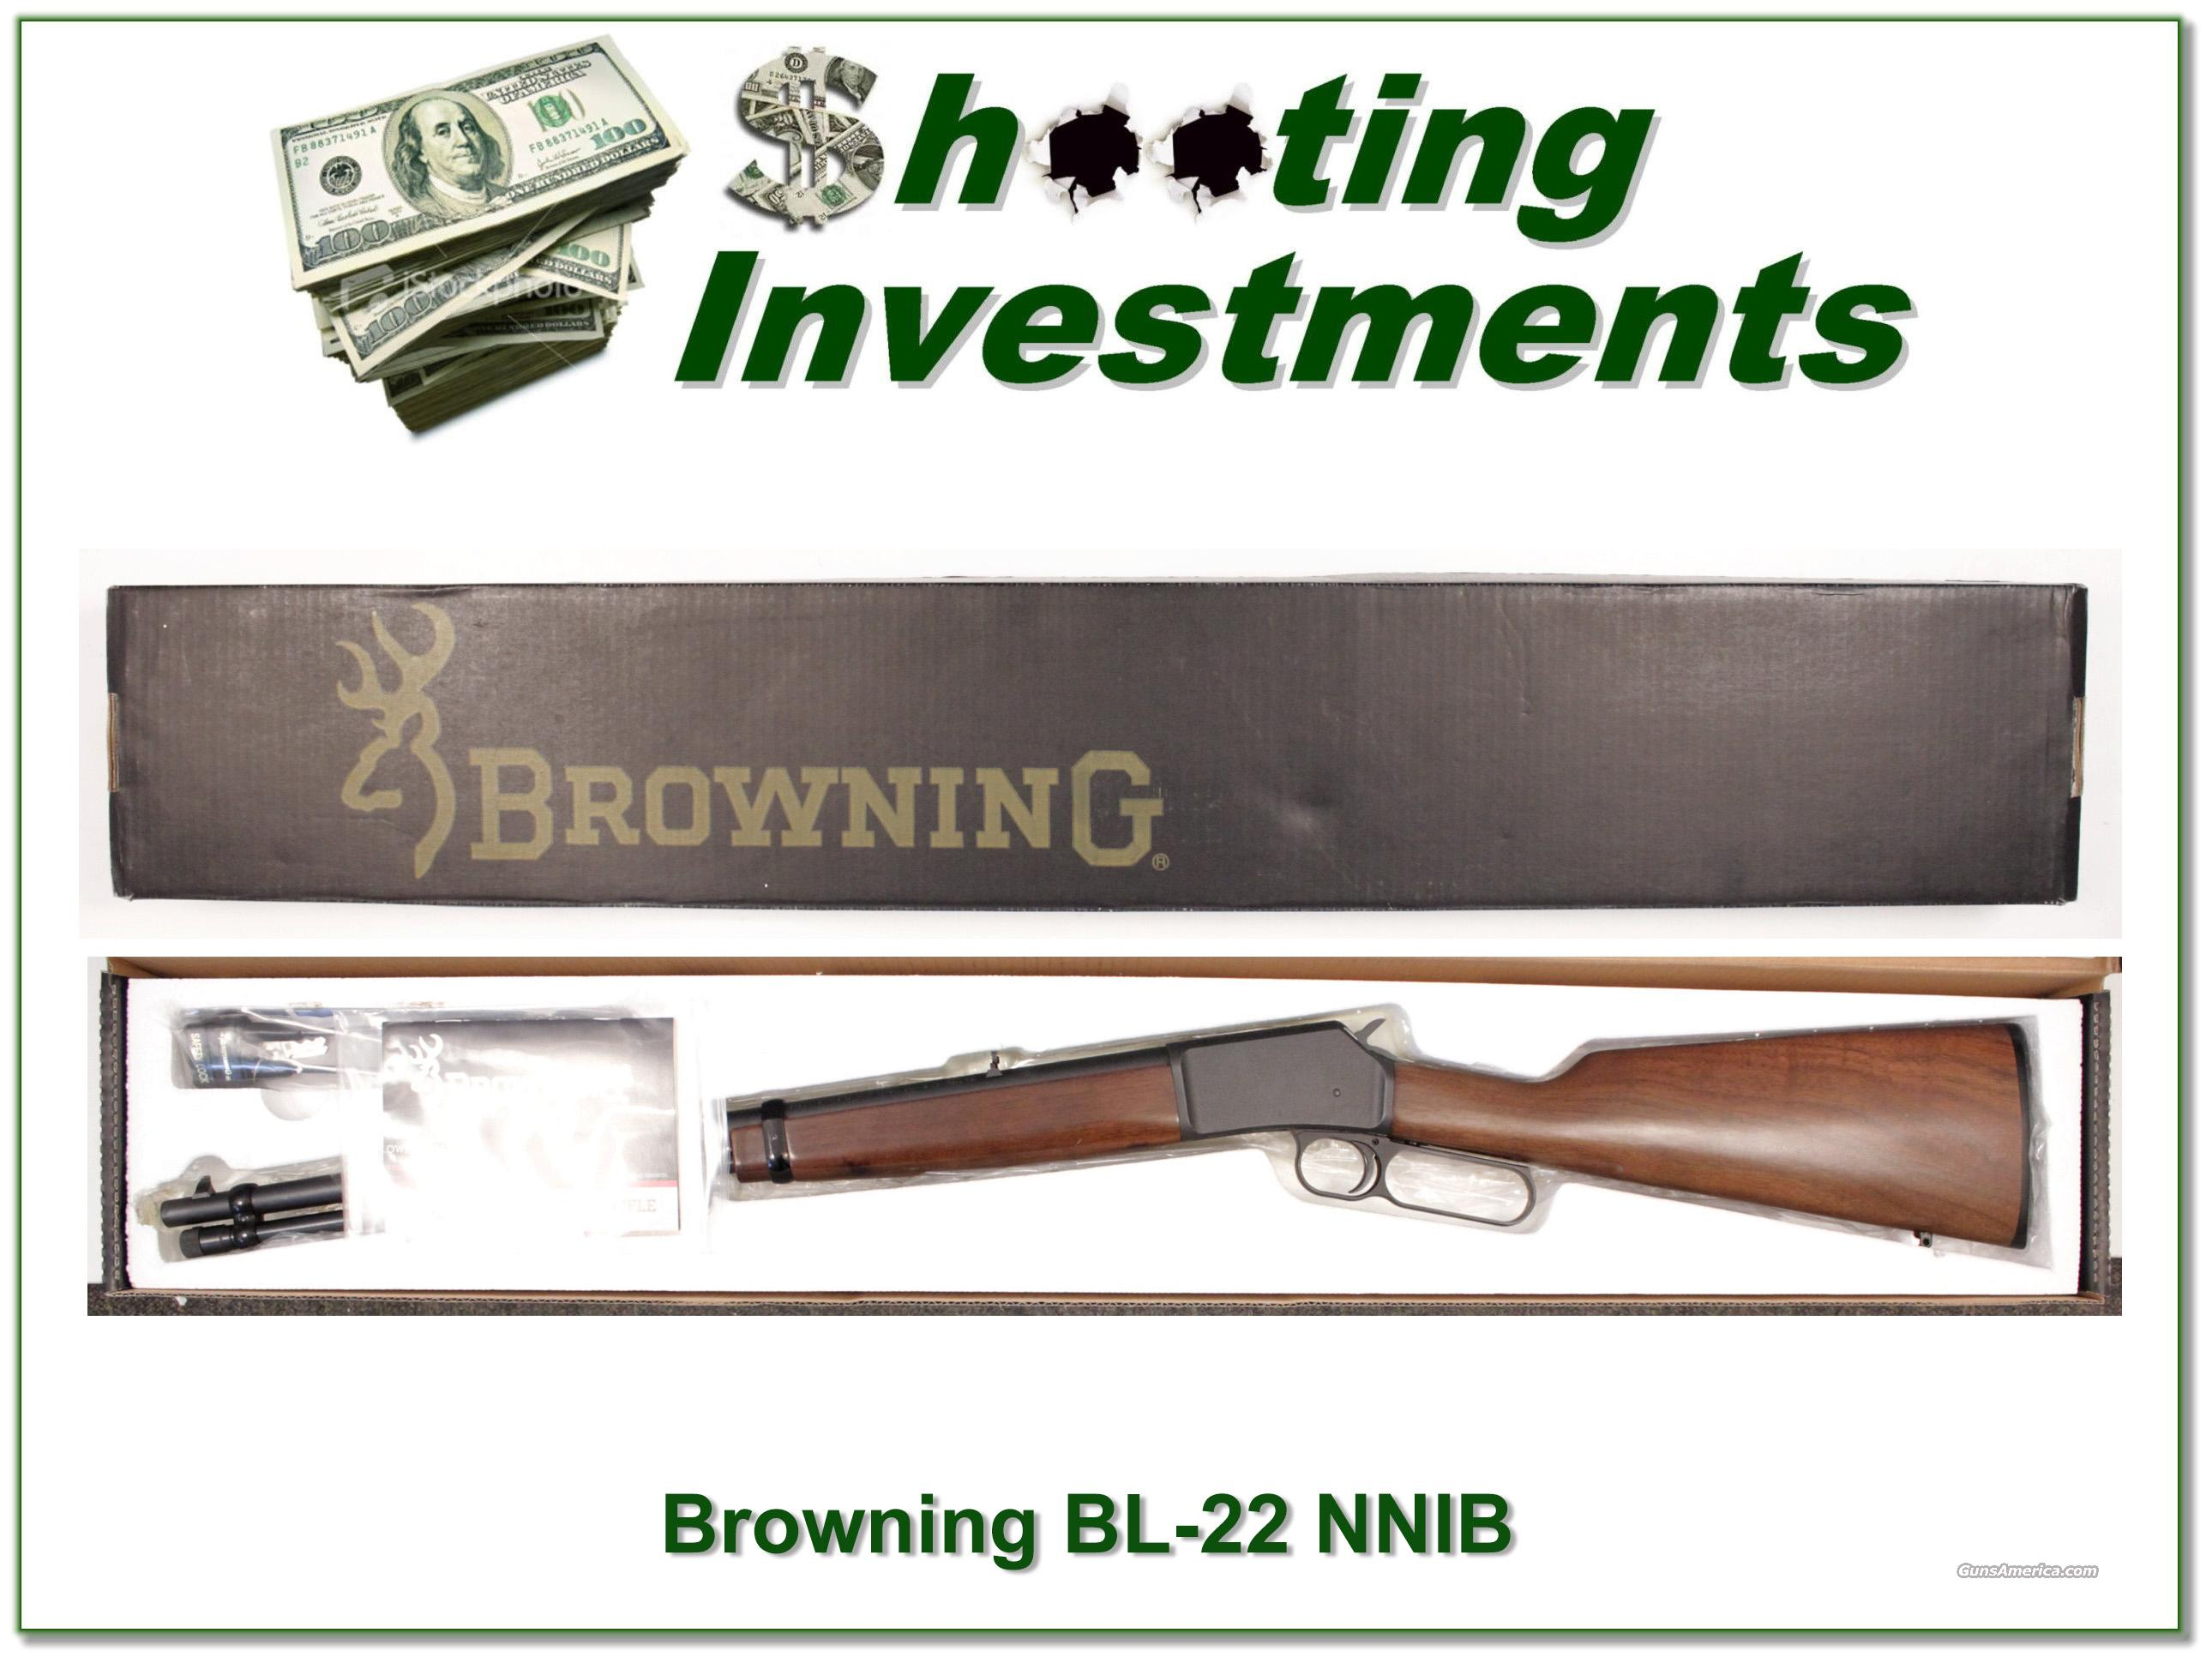 Browning BL-22 22 Lever Rimfire NNIB  Guns > Rifles > Browning Rifles > Lever Action